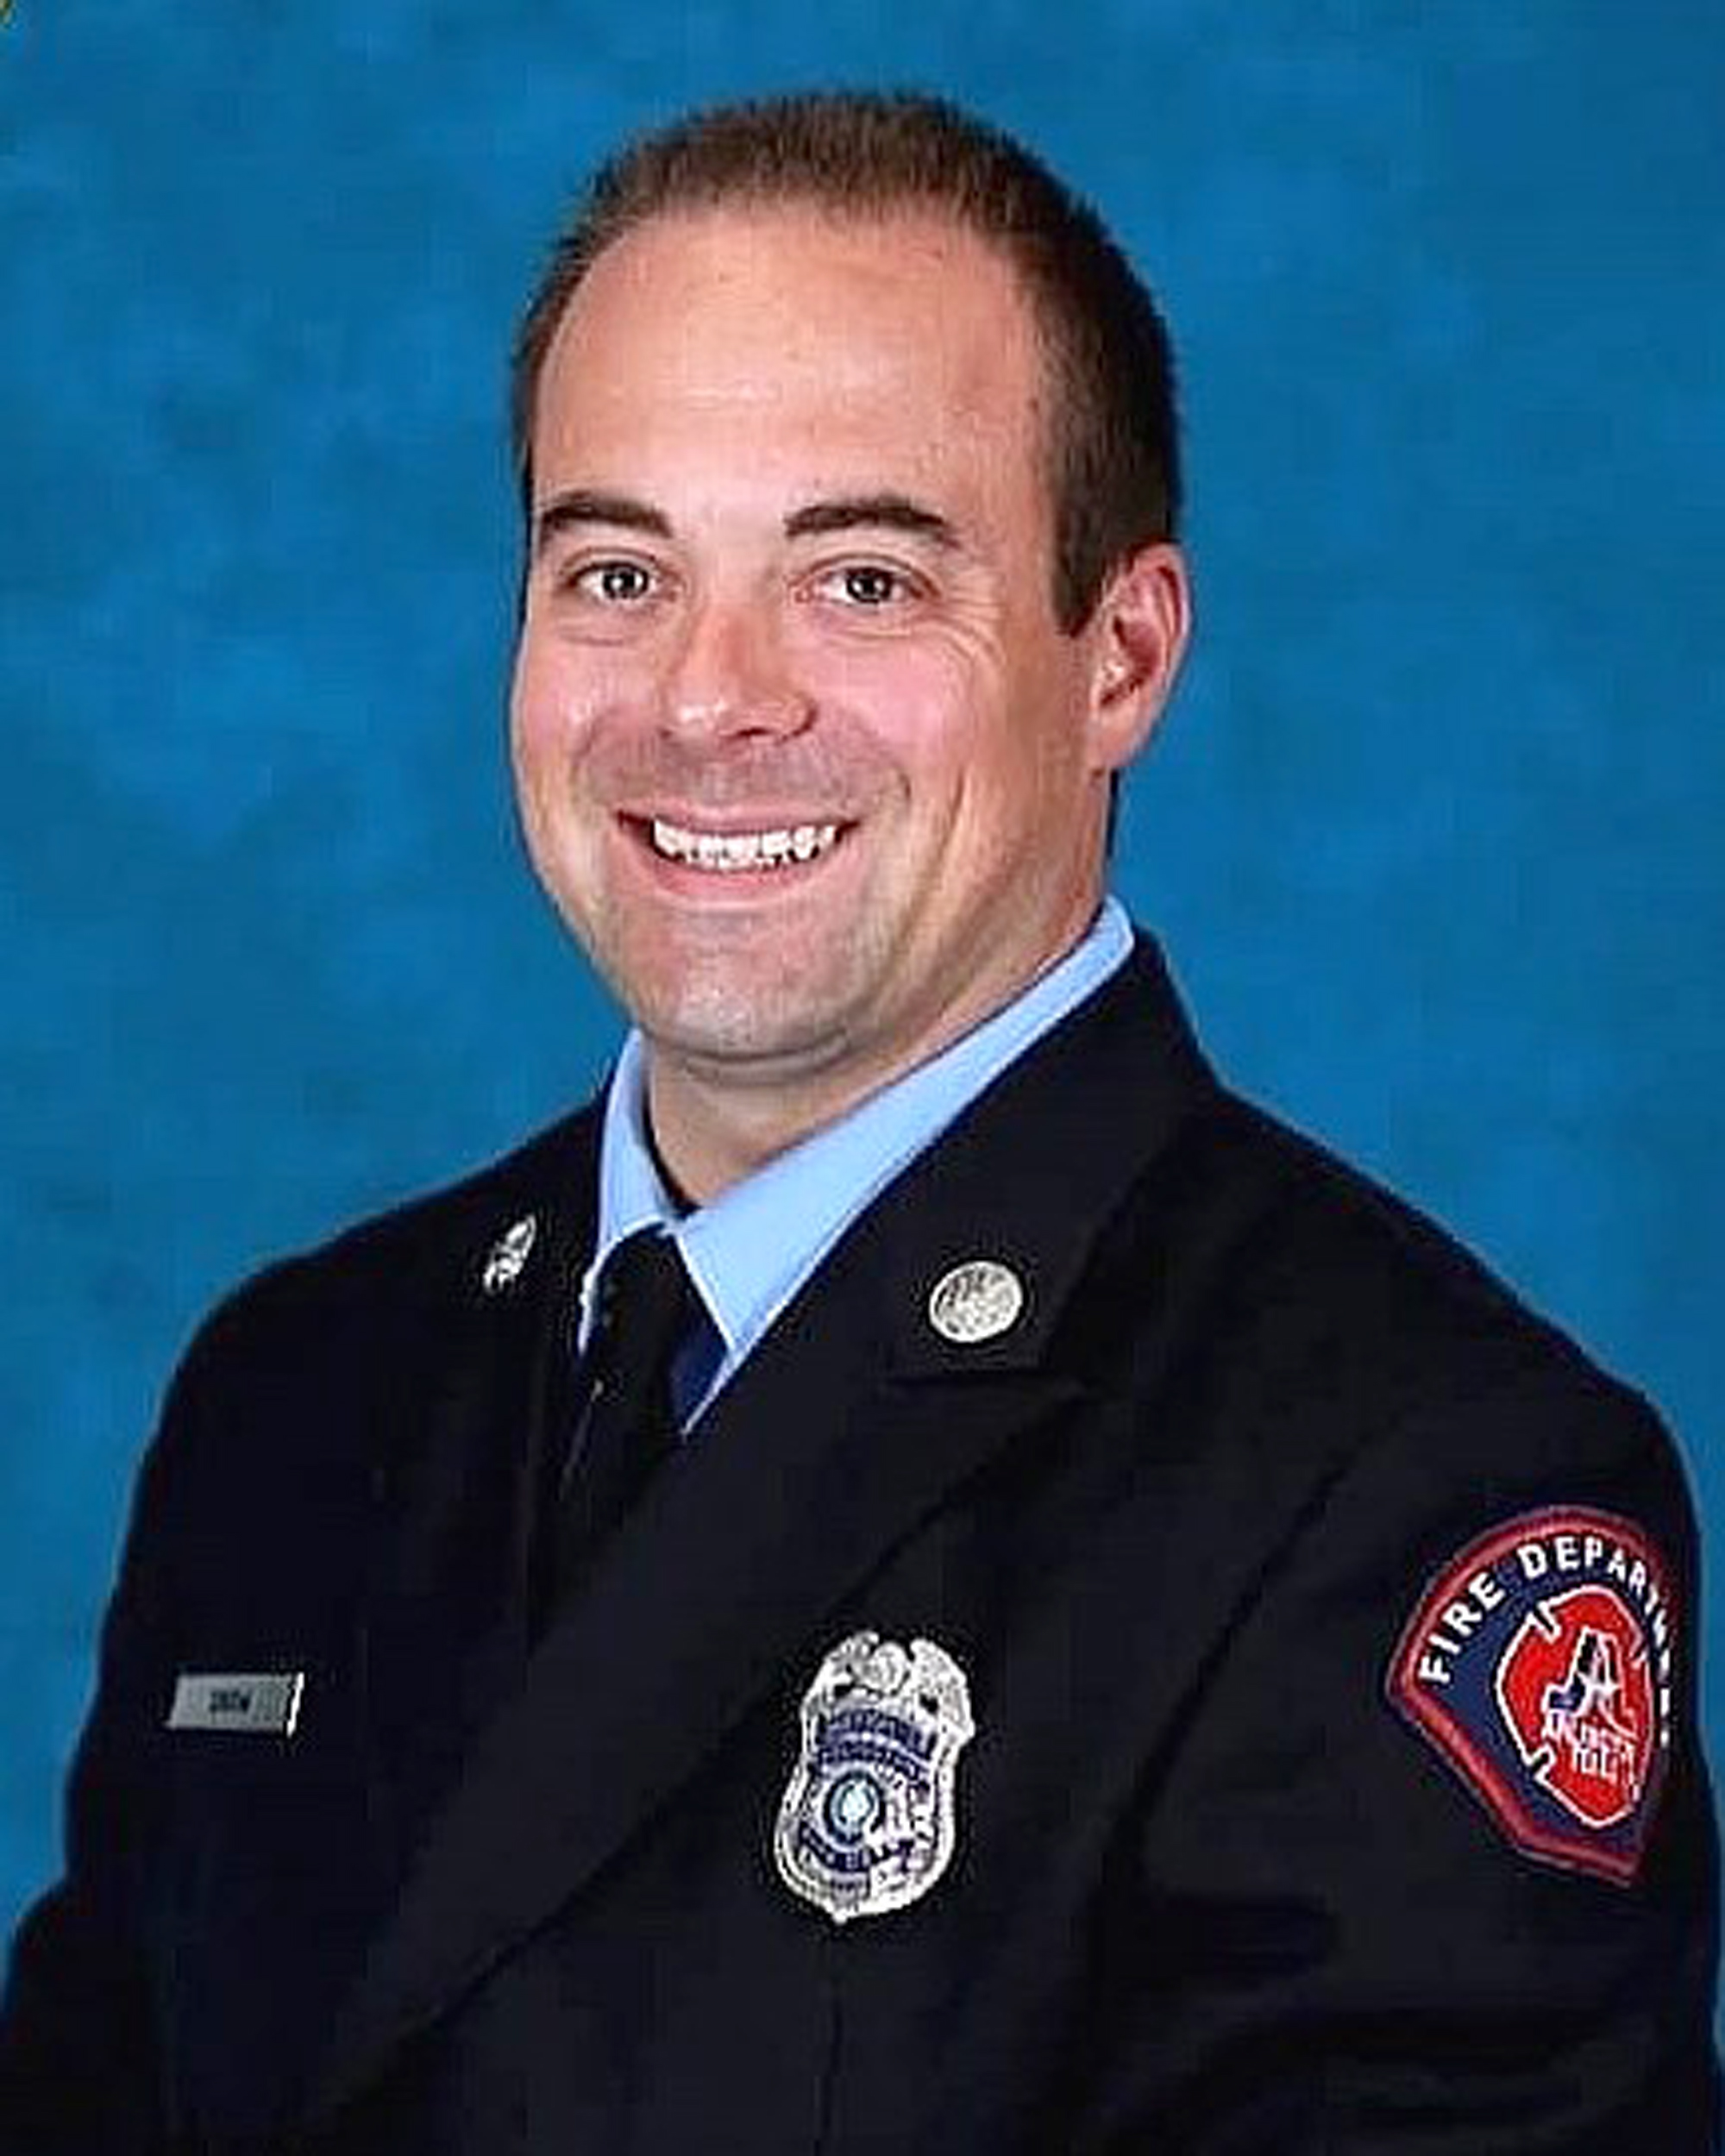 Firefighter celebrating his wedding anniversary found dead in Cancun